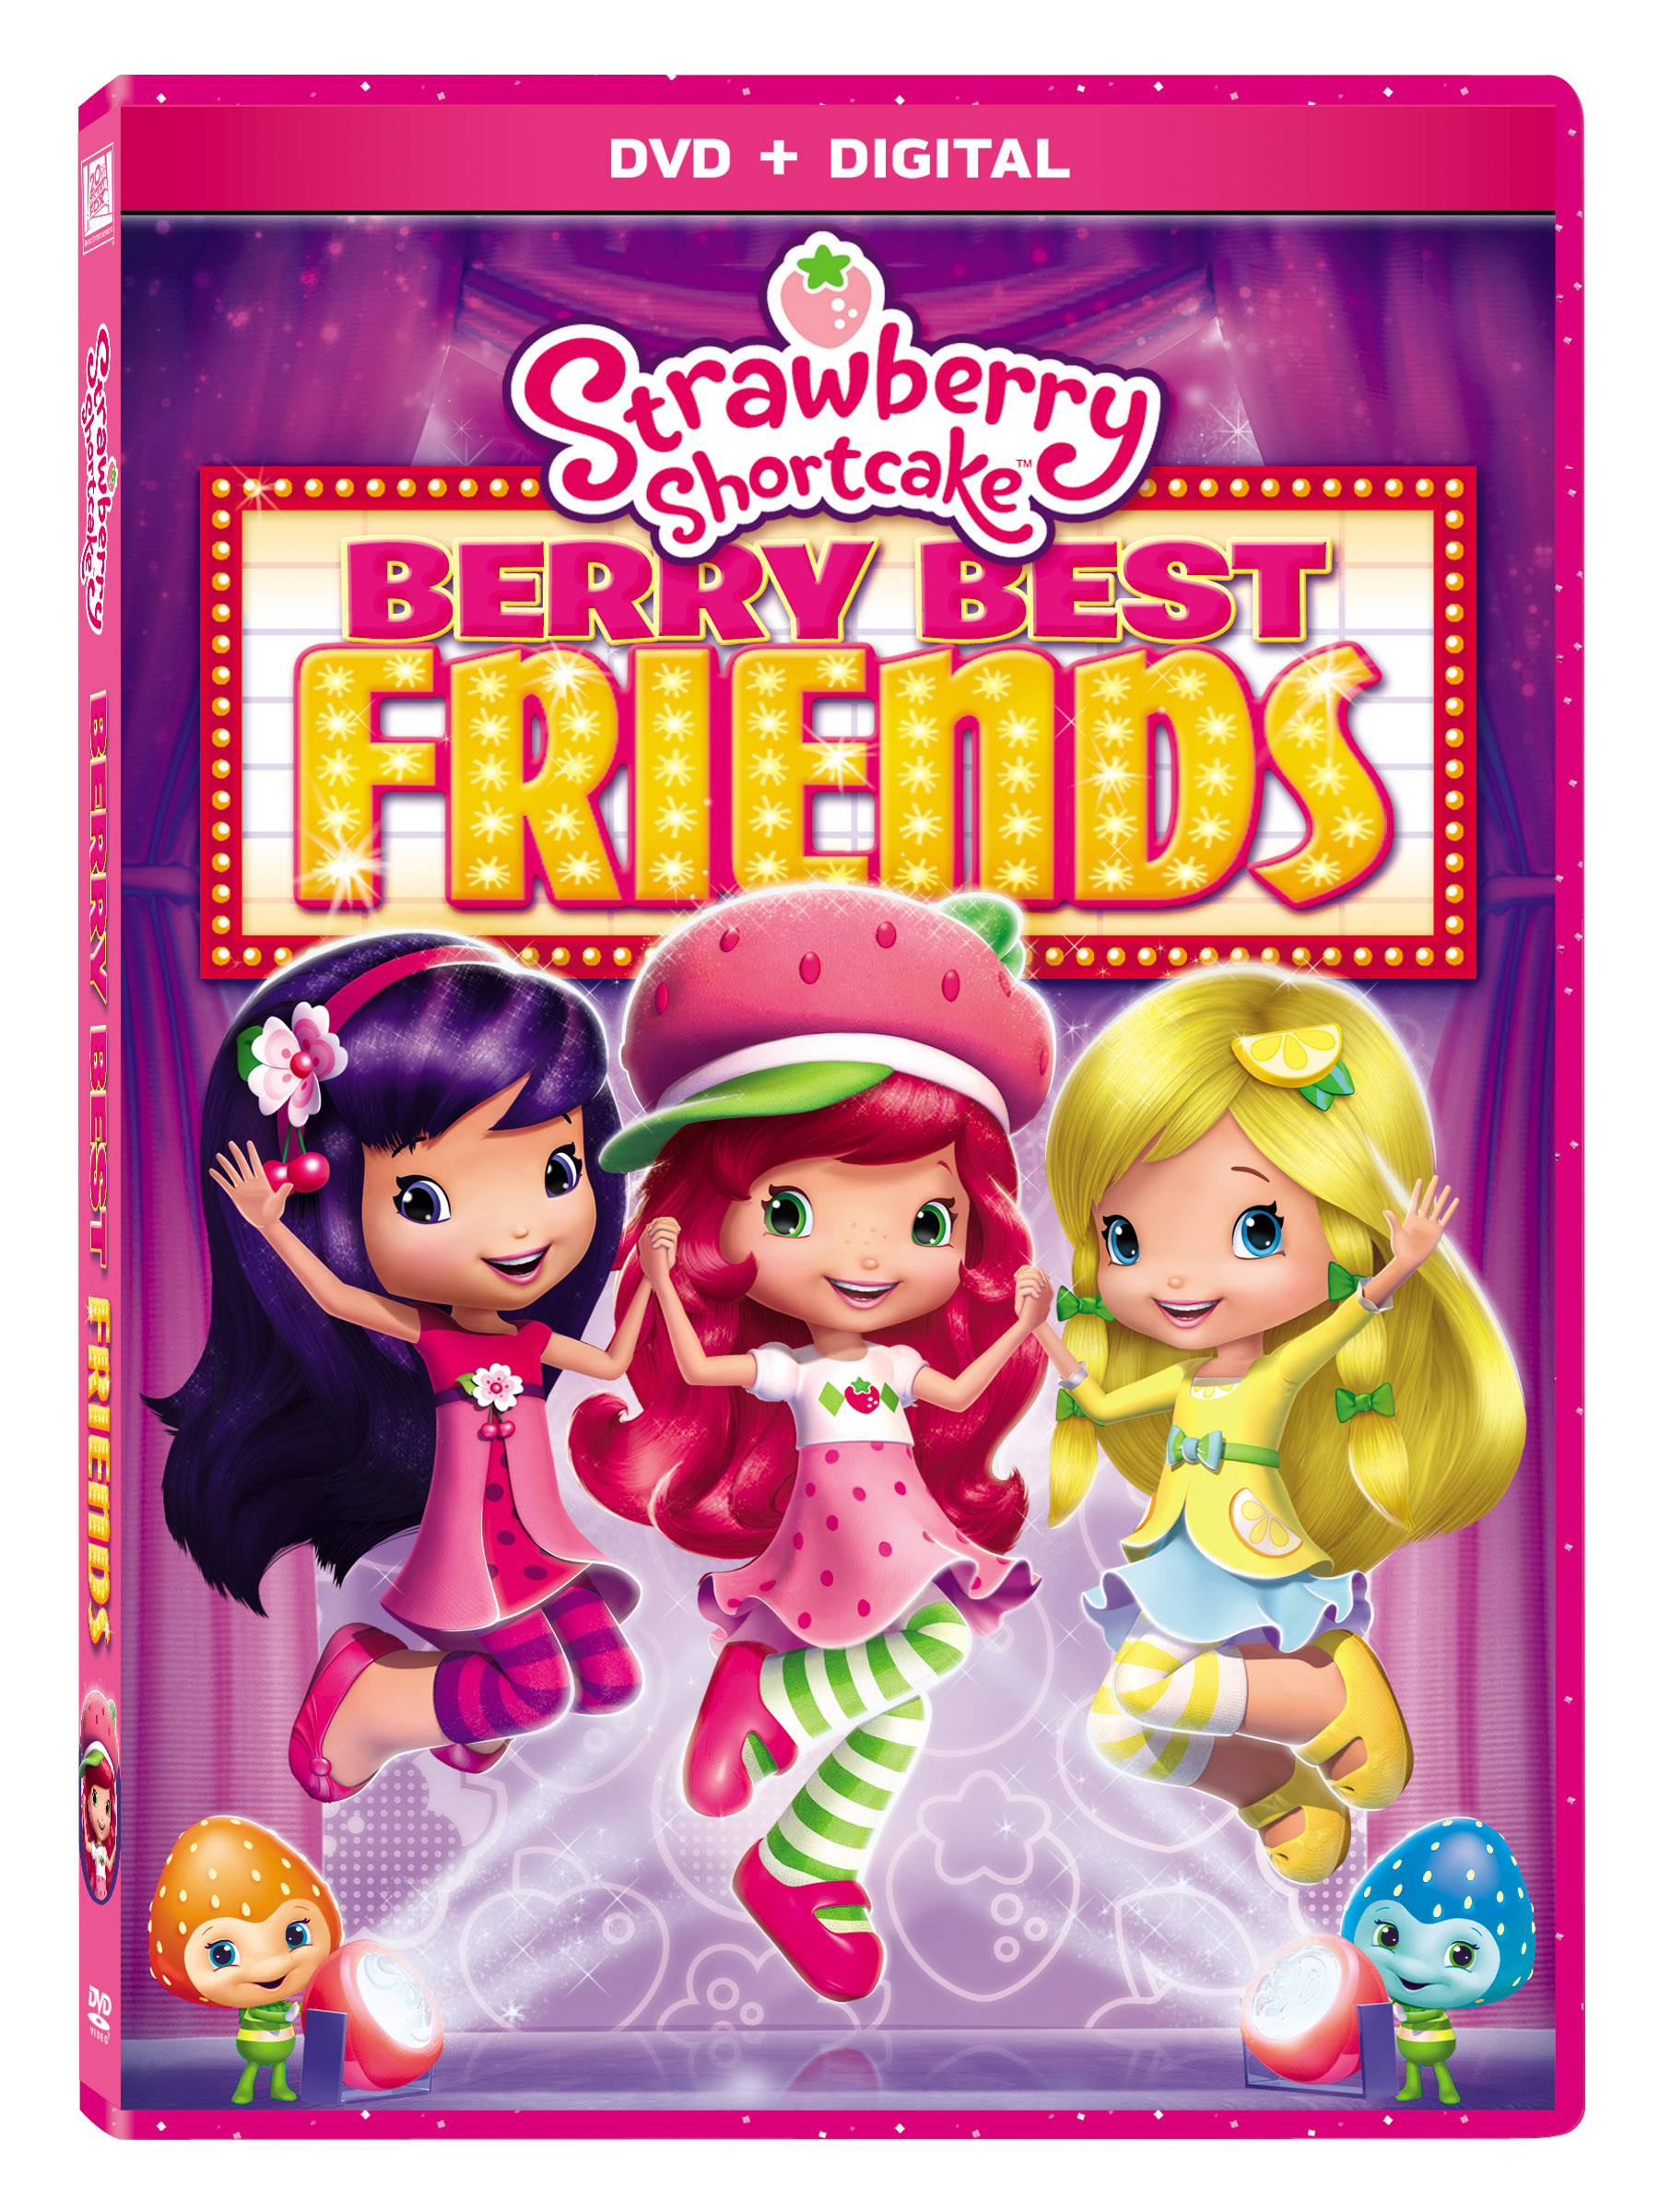 Strawberry Shortcake Dvds  Strawberry Shortcake Berry Best Friends available on DVD